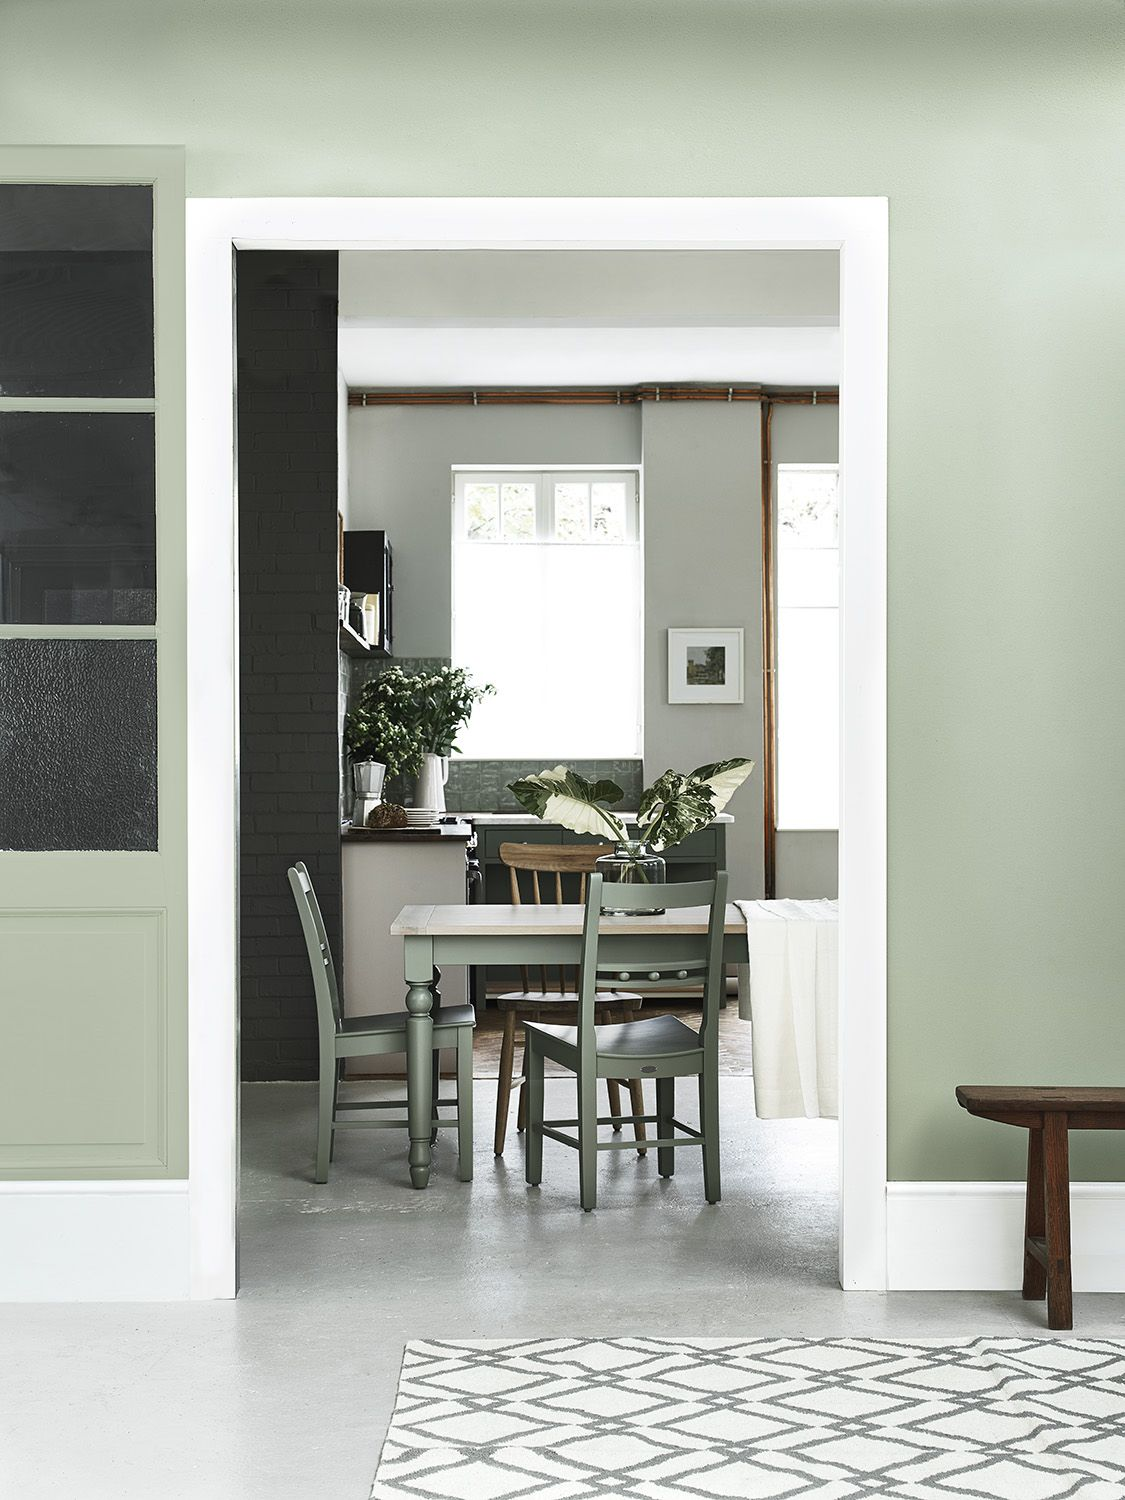 Suffolk Dining Table Hand Painted In Sage Green Walls We Interiors